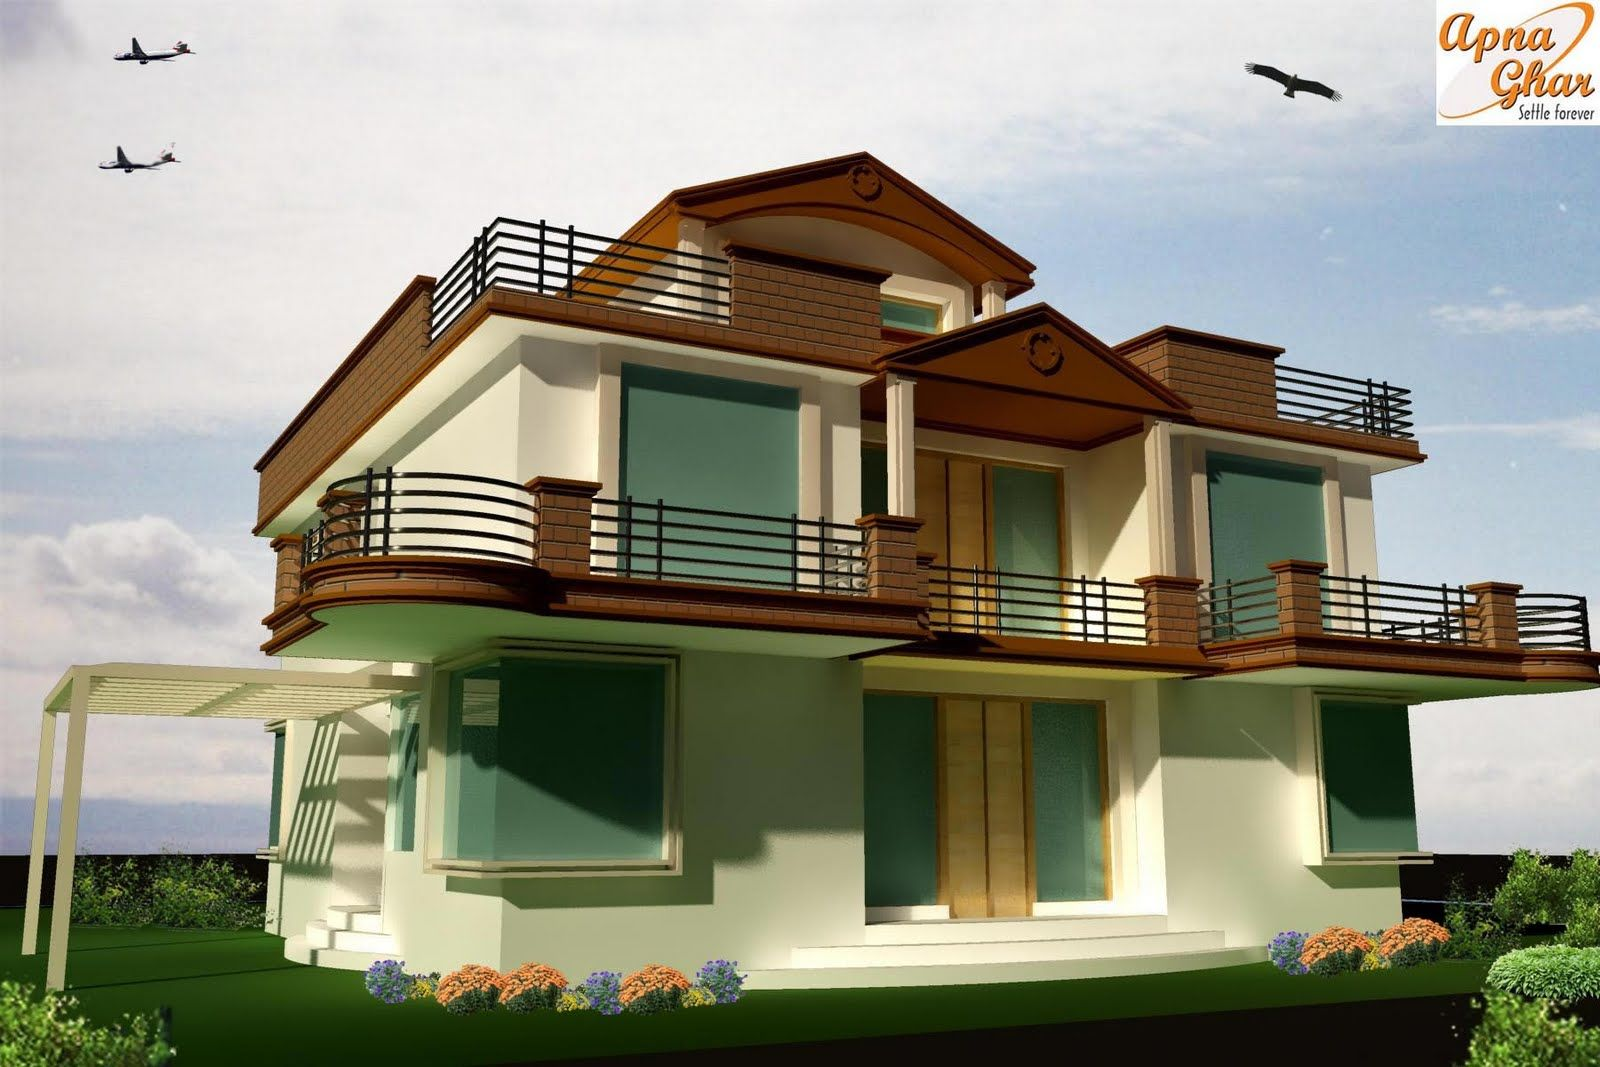 Architectural designs modern architectural house plans for Modern house plans